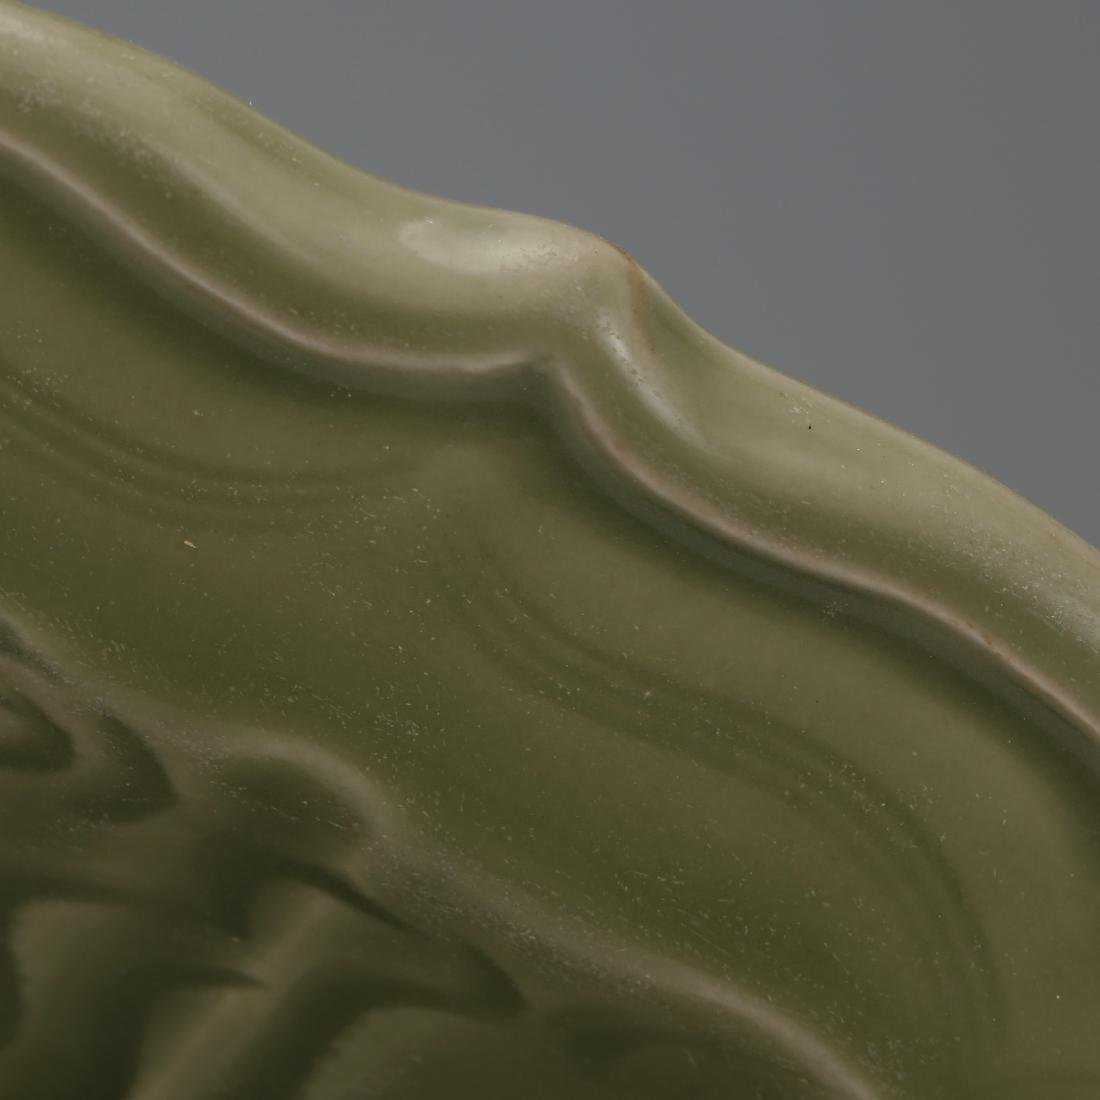 CHINESE CELADON LONGQUAN GLAZED CHARGER - 4